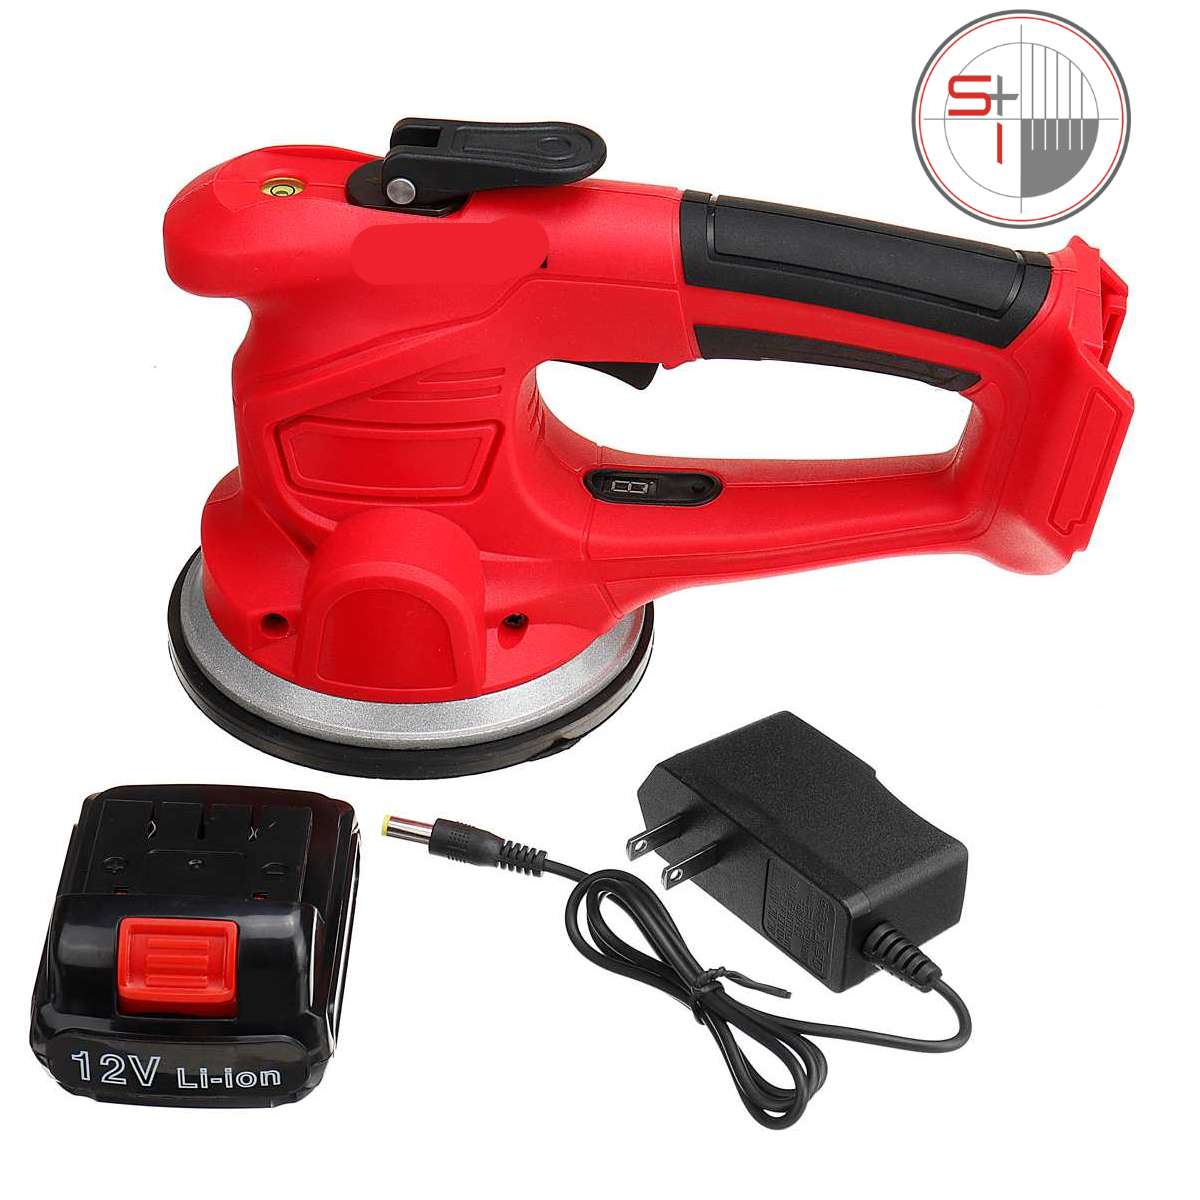 6 Speed Adjustable Electric Floor Laying Tiles Machine Tool with 2 Batteries